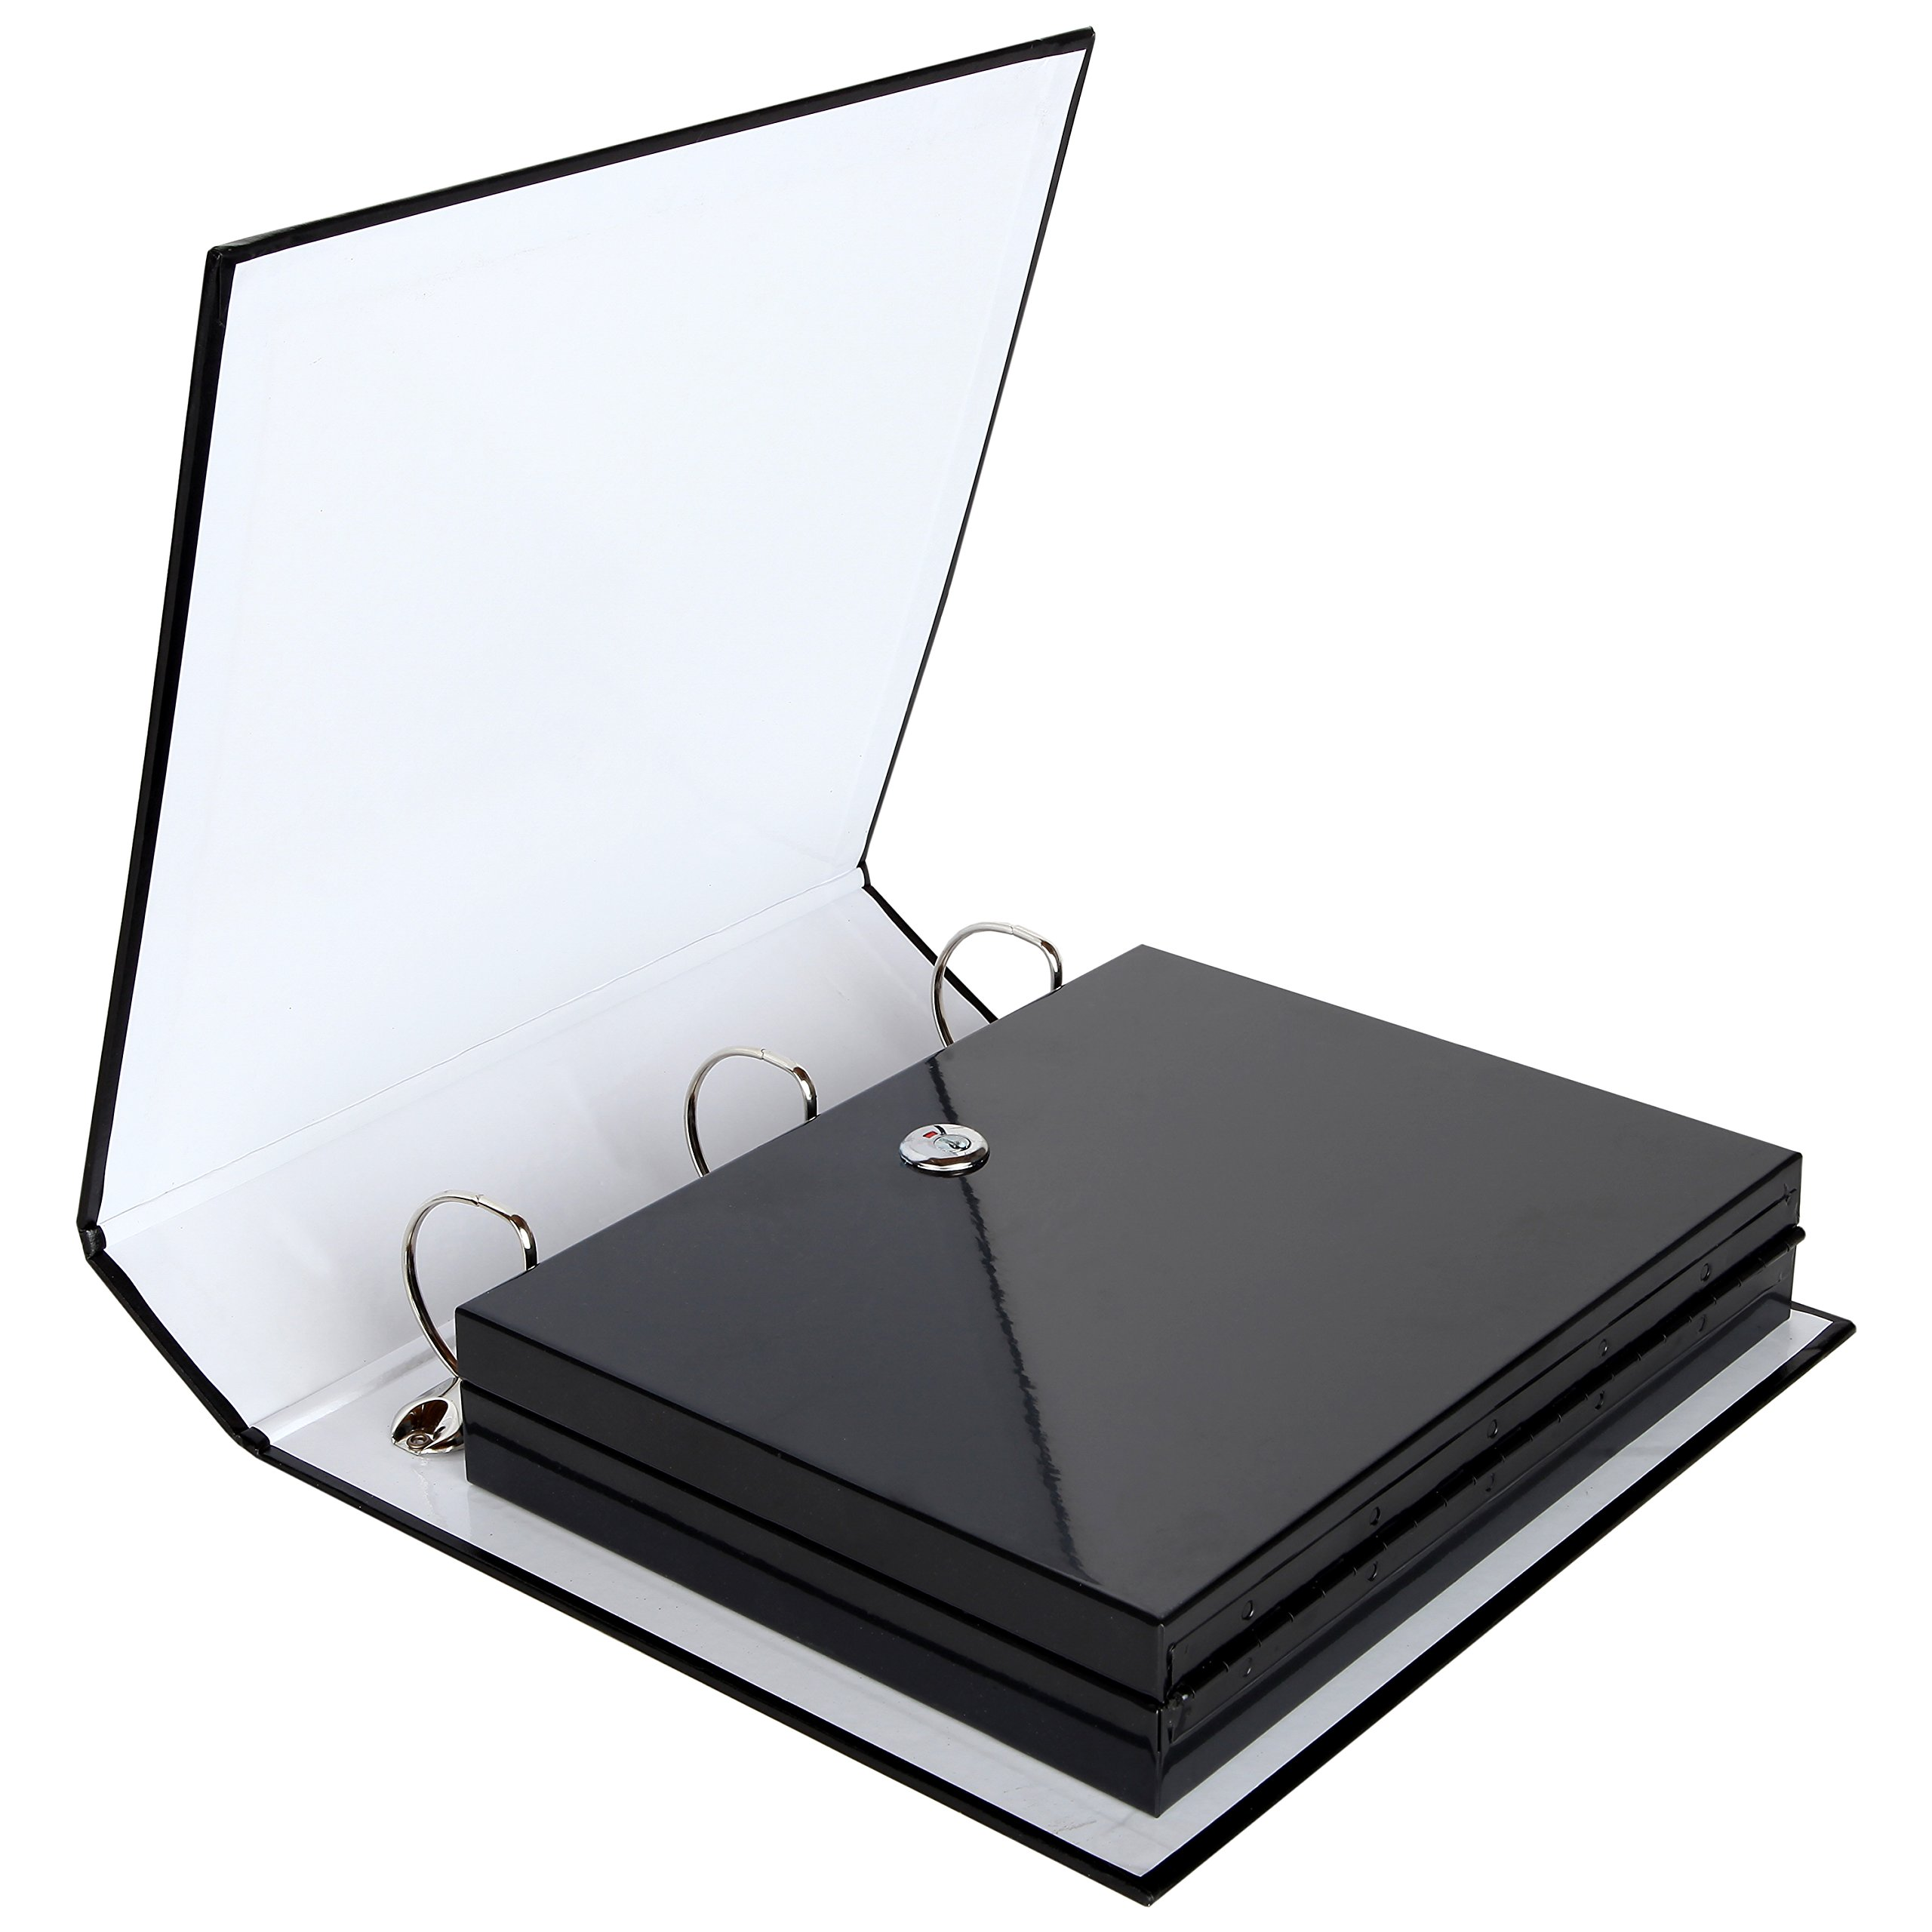 Safe Solutions Binder Diversion Safe with Lock (11.15'' x 8.7'') - Hidden Safe Container for Money, Jewelry or Valuables - Great for Home or Office - Convenient, Easy to Use - Durable Steel Construction